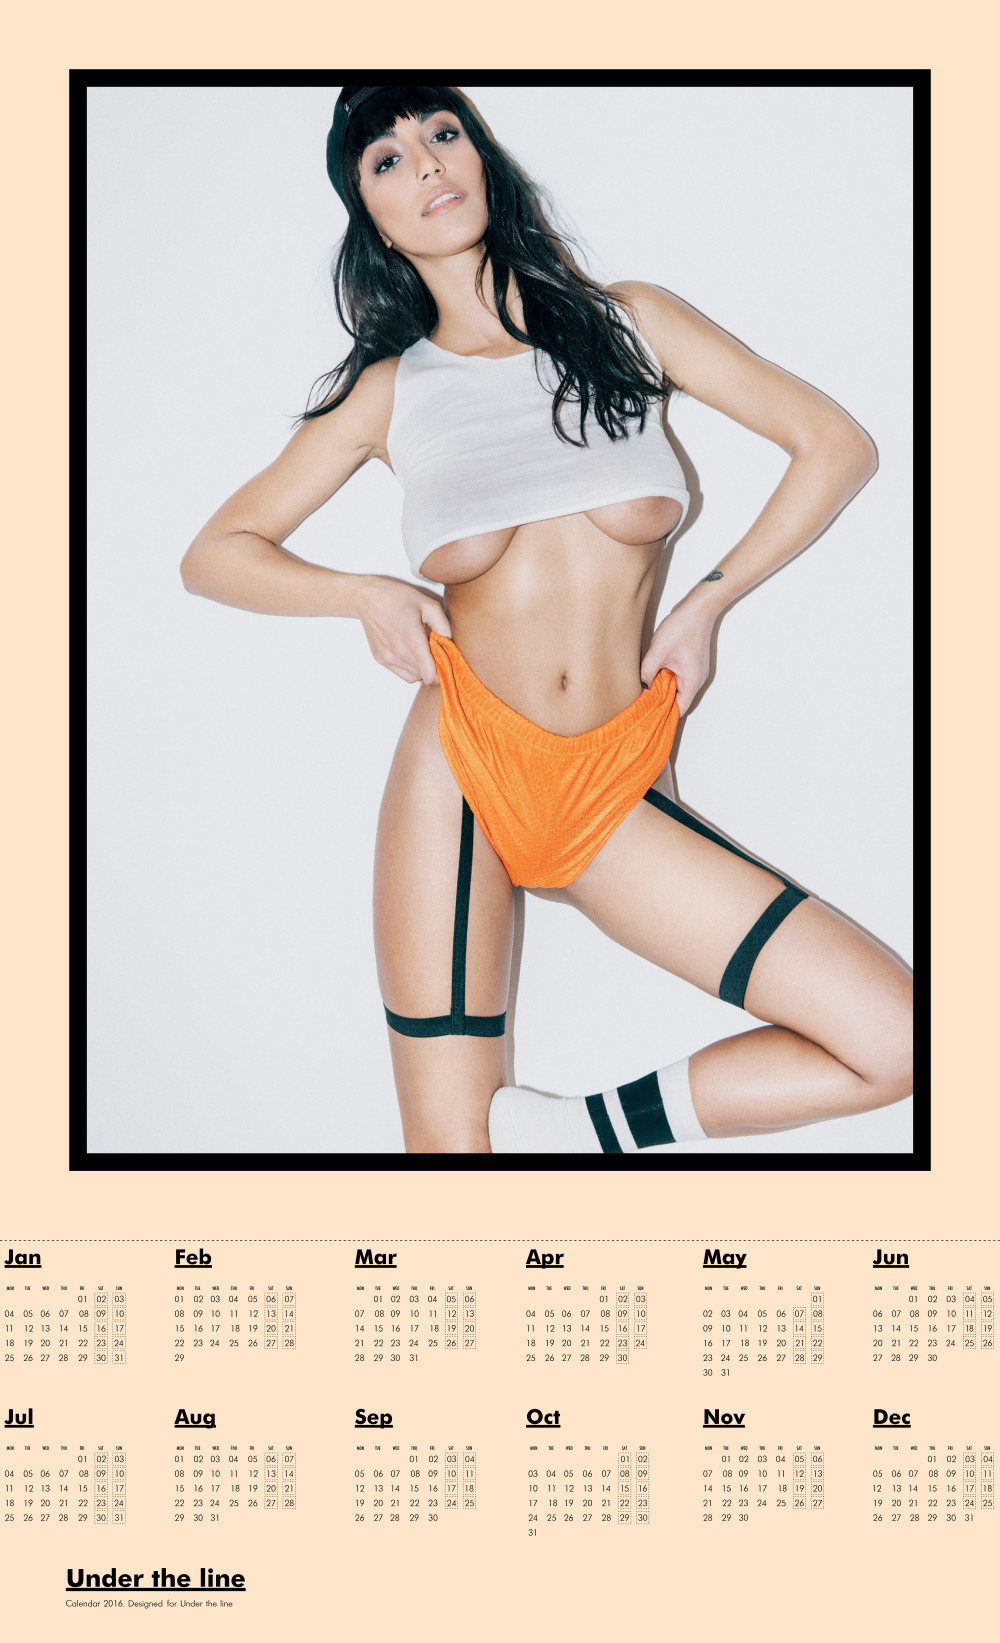 Calendar_2016_Undertheline-2